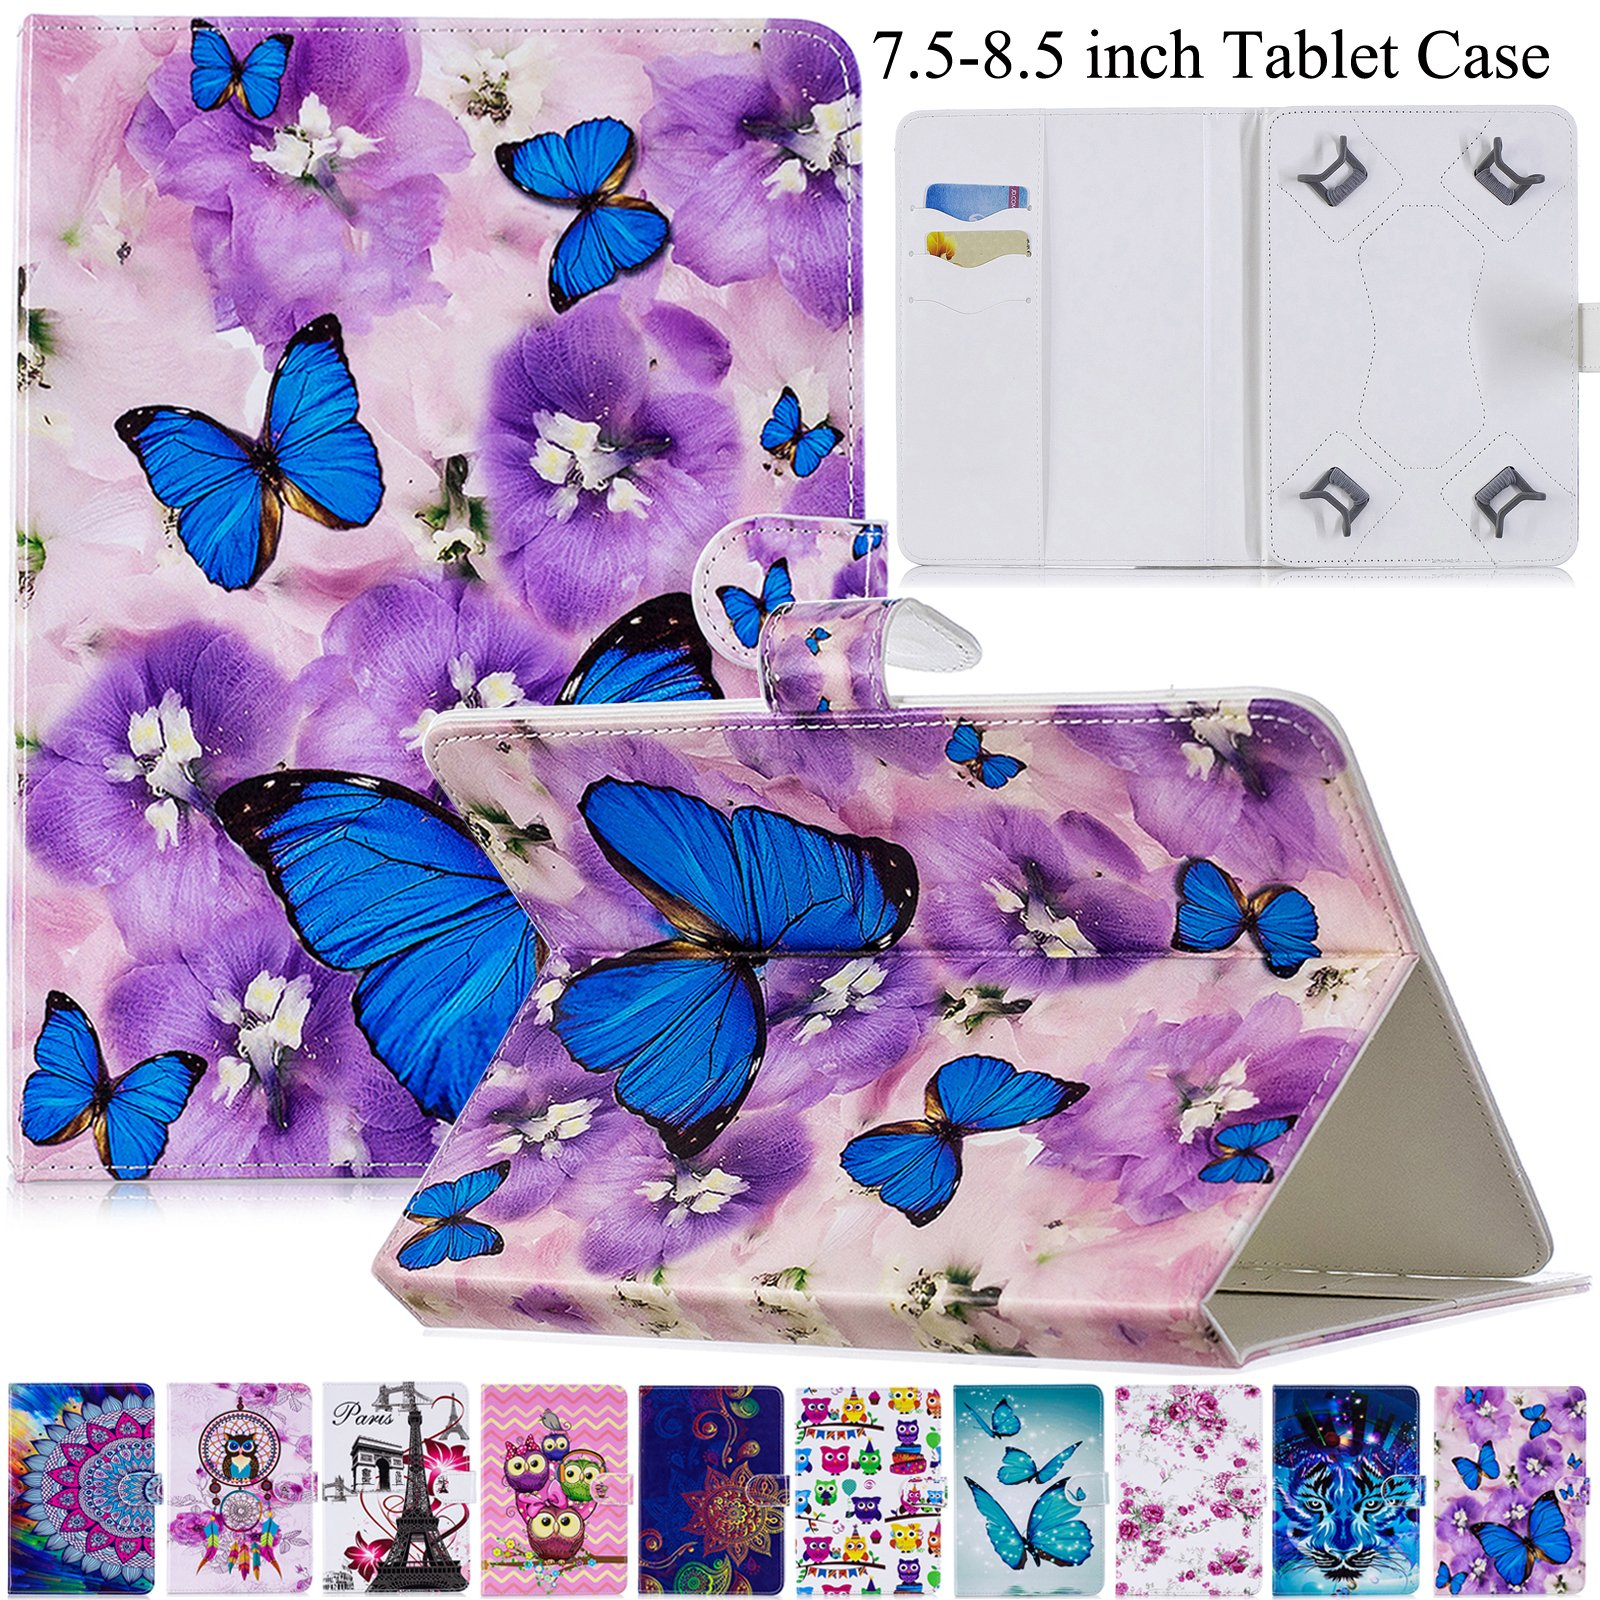 Universal 7.5-8.5 inch Tablet Case, Artyond Multi-Angle Stand Flip Wallet Case Cards Slots Magnetic Buckle Cover iPad Mini,Kindle,Android,Galaxy Tab & Other 7.5-8.5 inch Tablet (Violet)